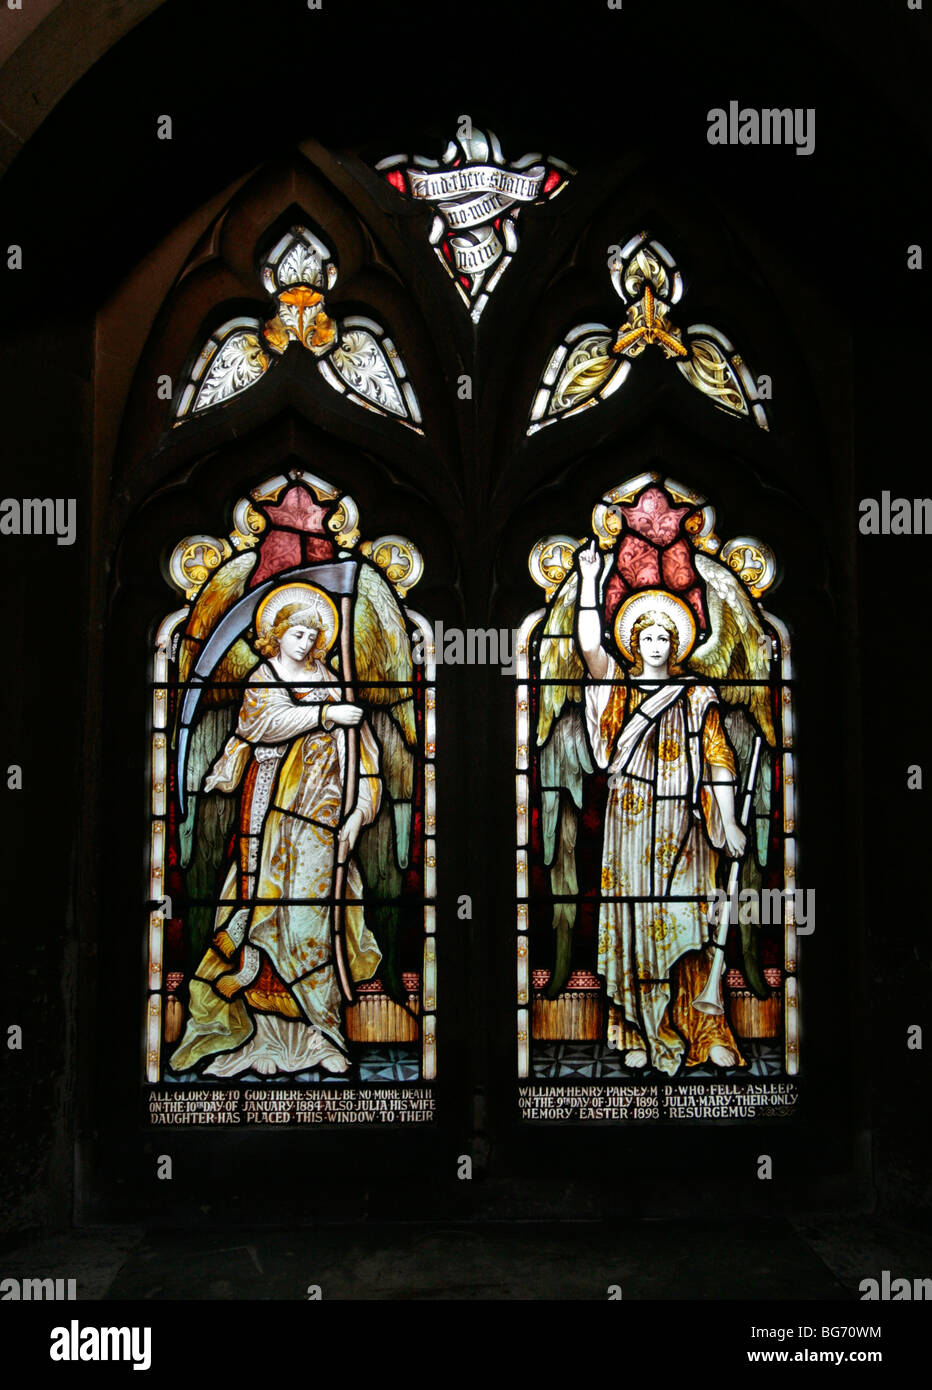 A stained glass window depicting Angels of the Apocalypse; Hatton Church, Warwickshire - Stock Image